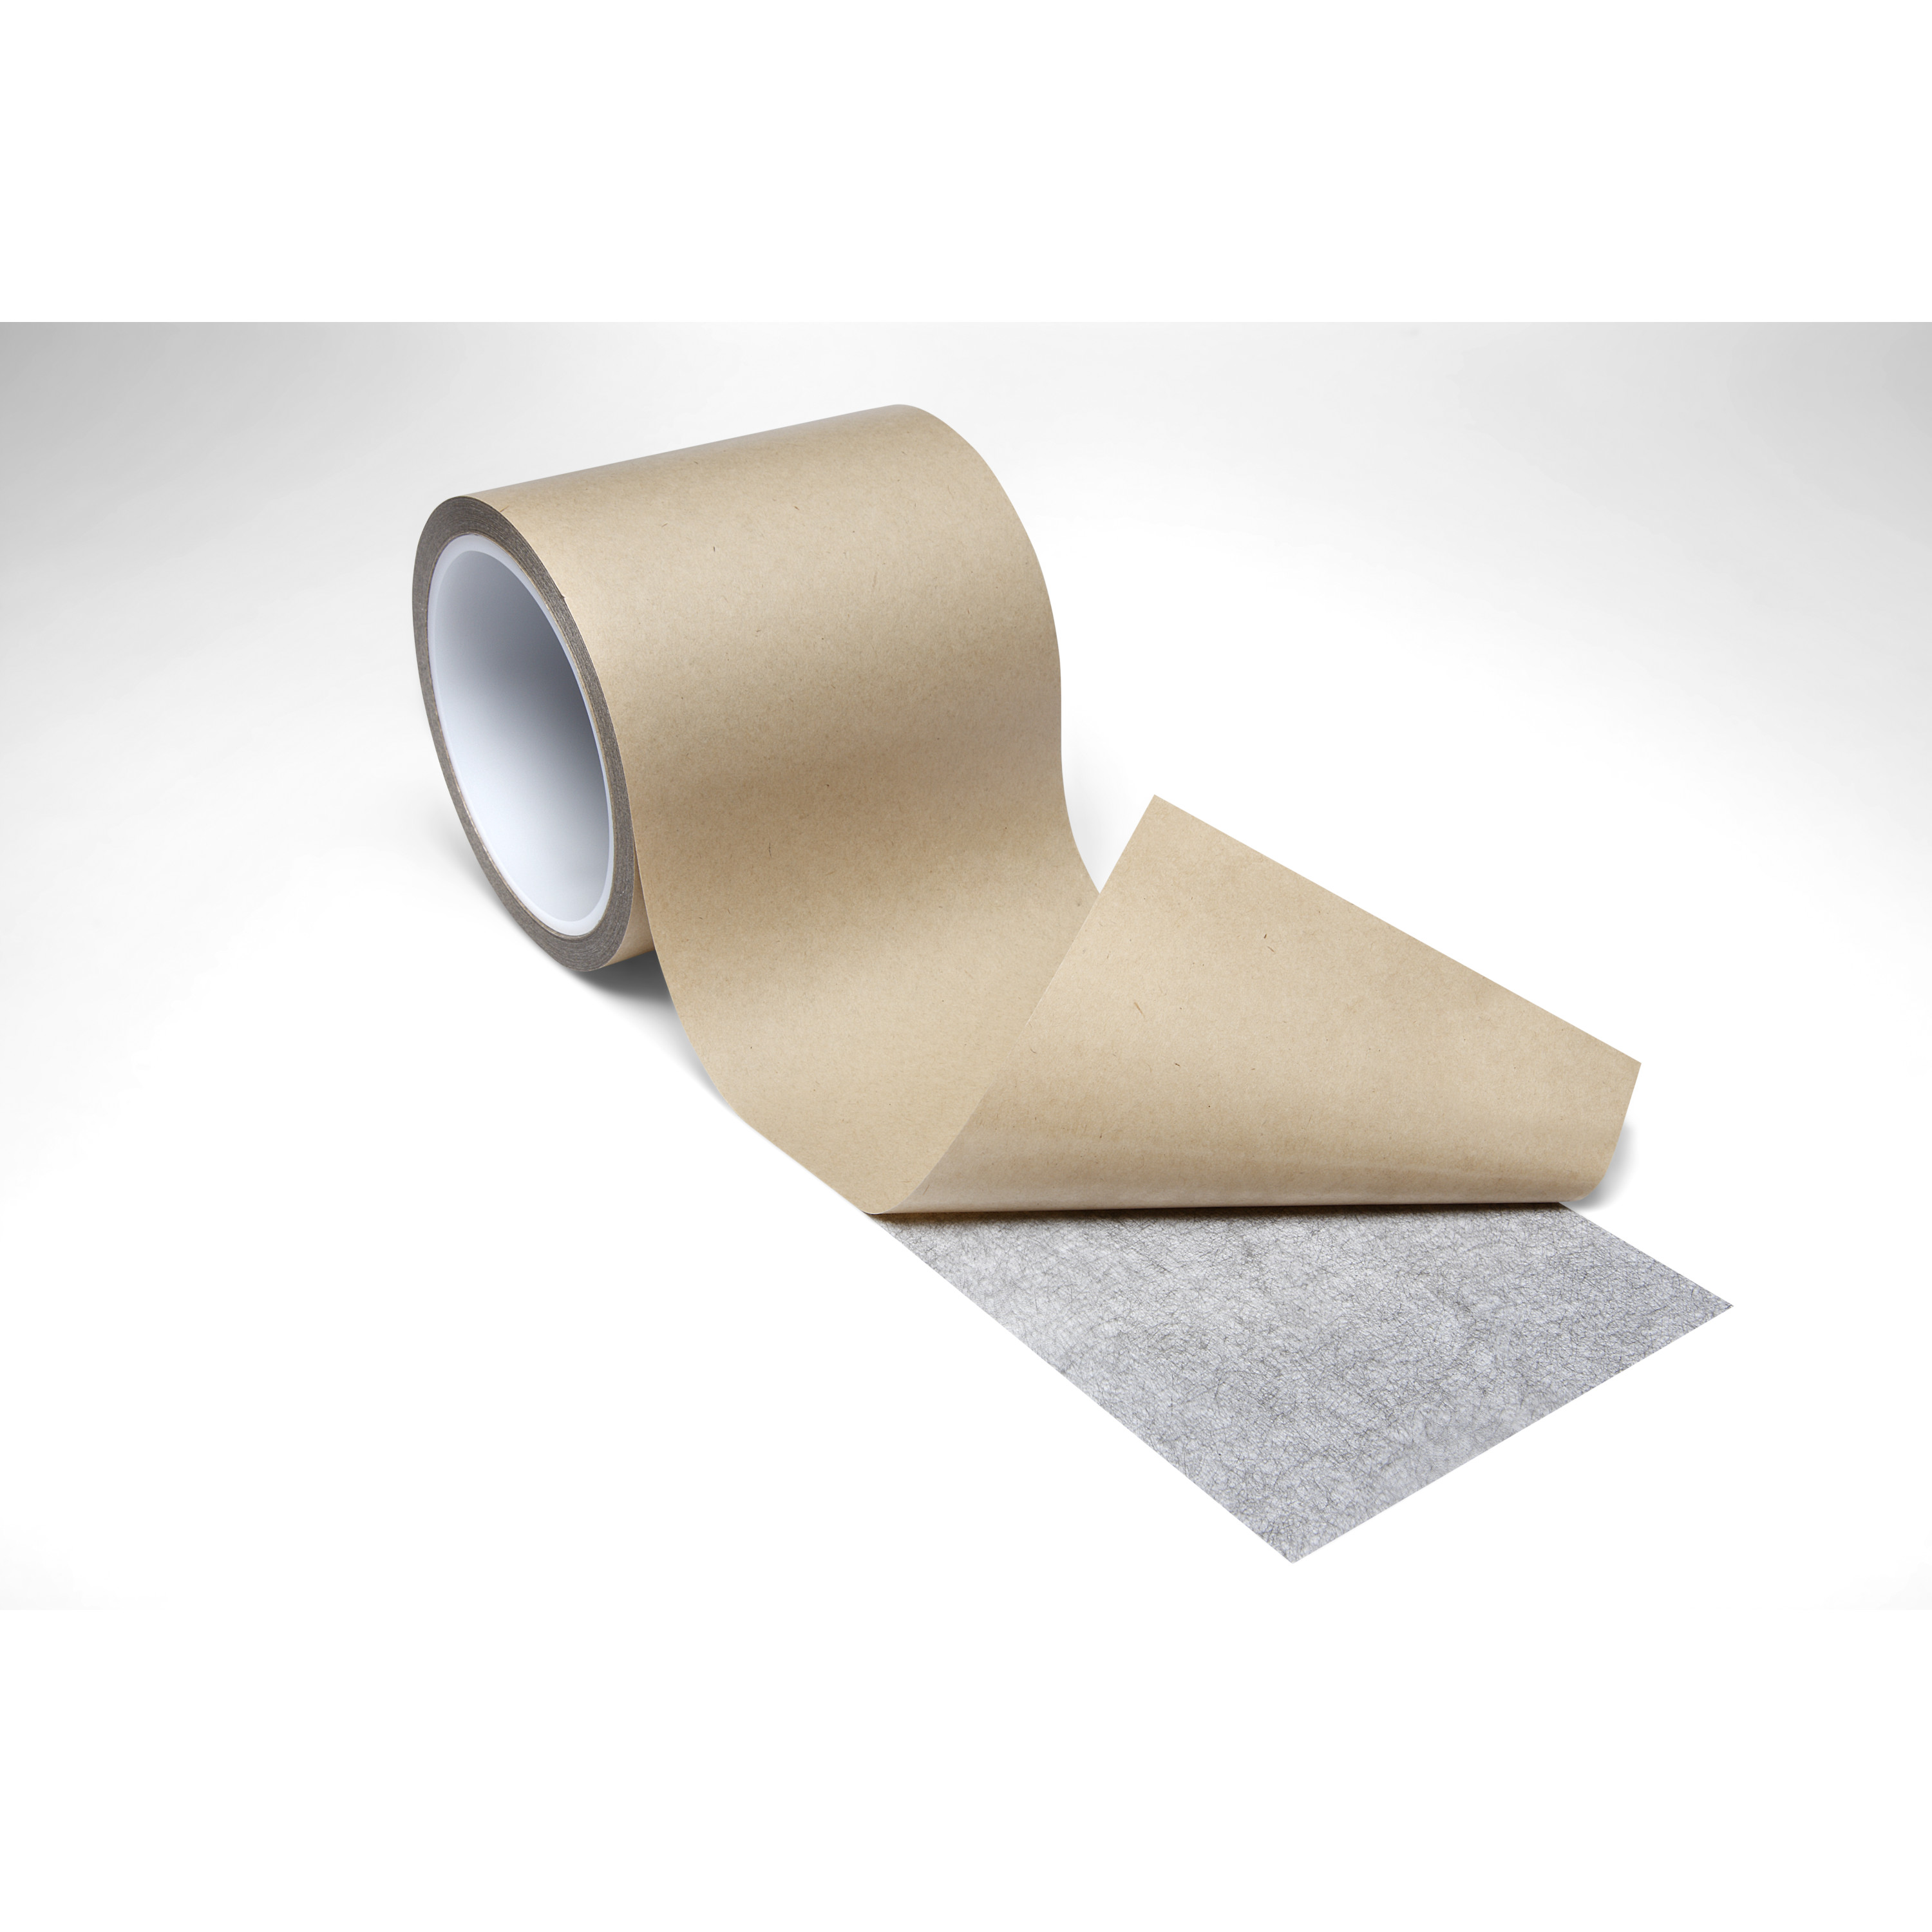 3M™ Electrically Conductive Adhesive Transfer Tape 9713, 1 in x 3 yd, Sample